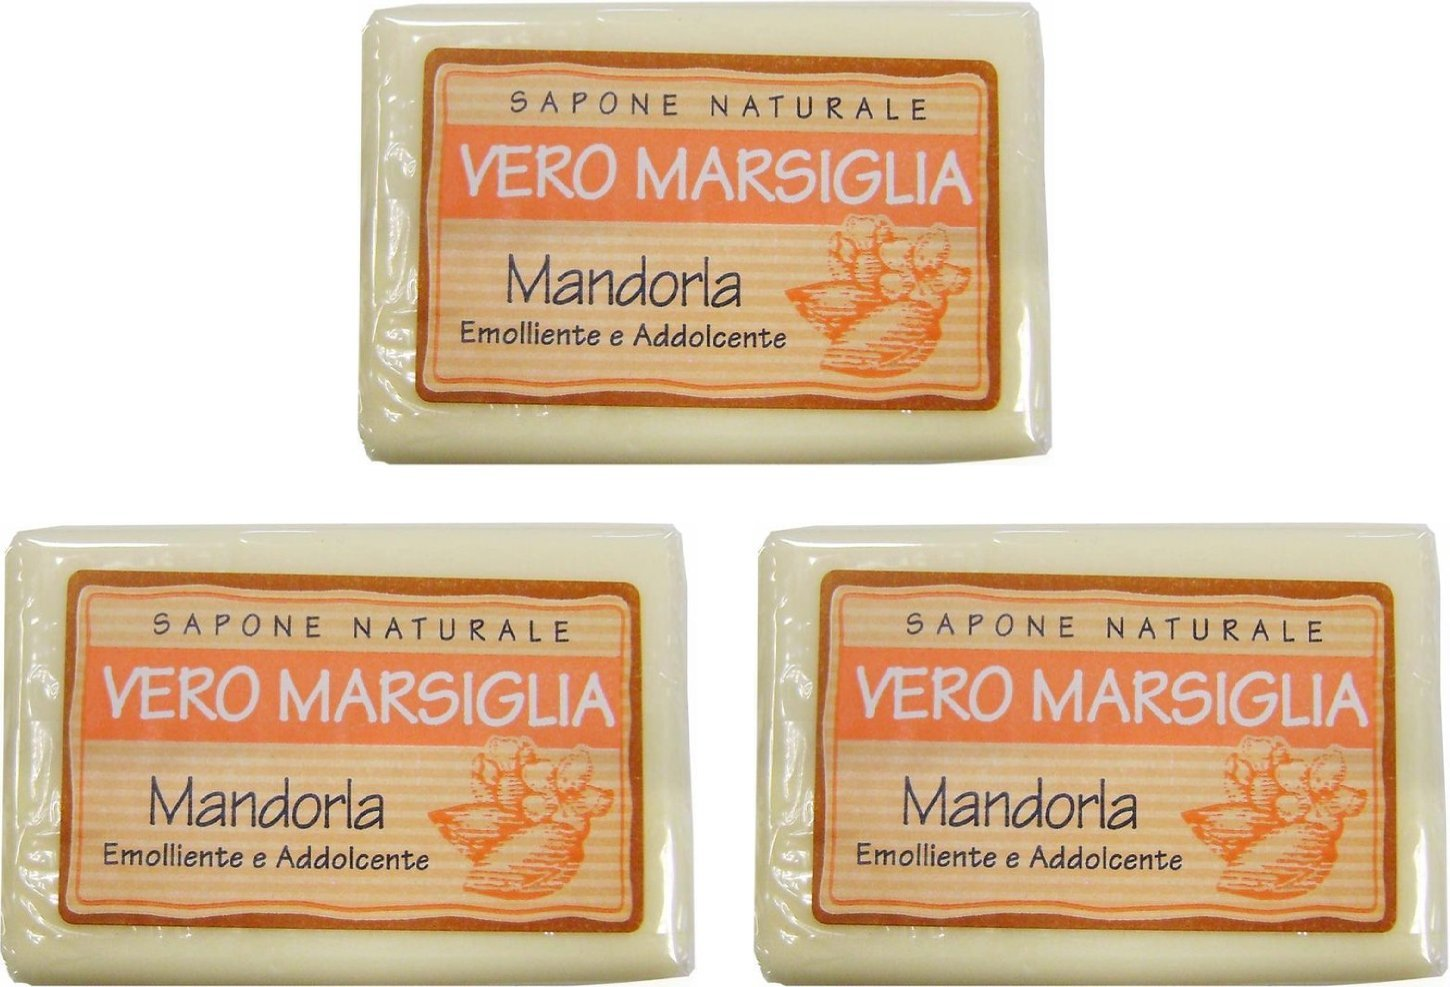 "Saponeria Nesti Firenze:""Vero Marsiglia"" Almond Soap 5.29 Ounce (150gr) Packages (Pack of 3) [ Italian Import ]"